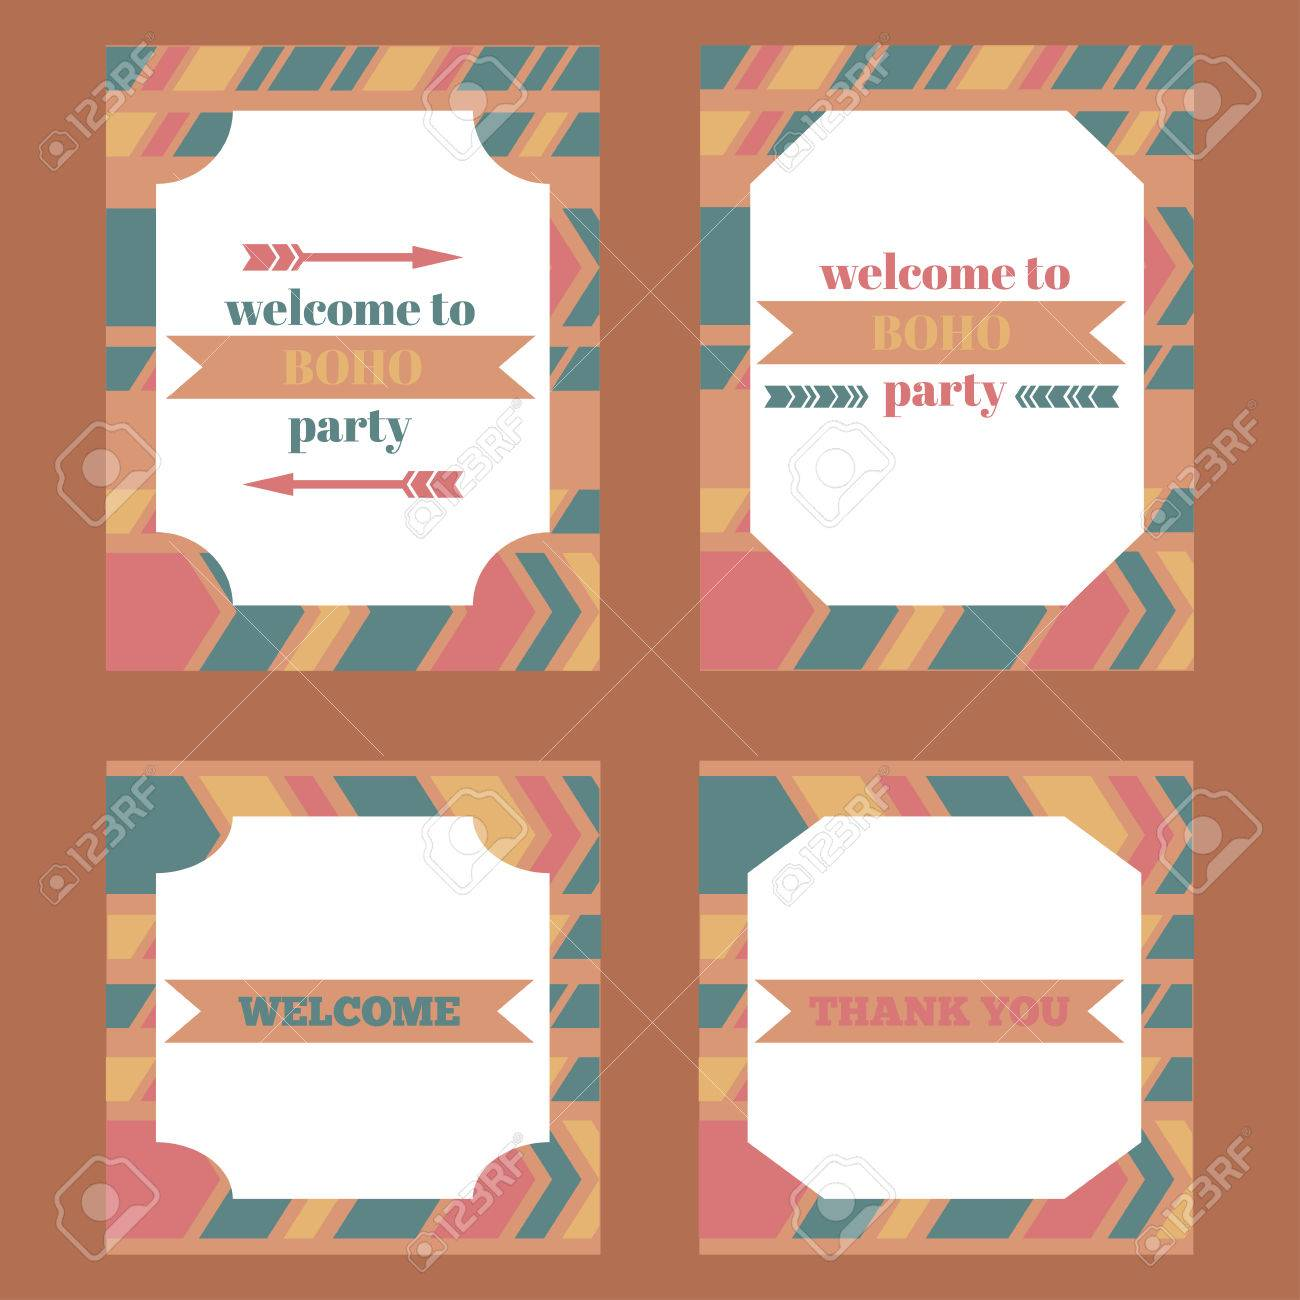 photo about Printable Elements named Printable tribal fastened of traditional boho occasion variables. Templates,..